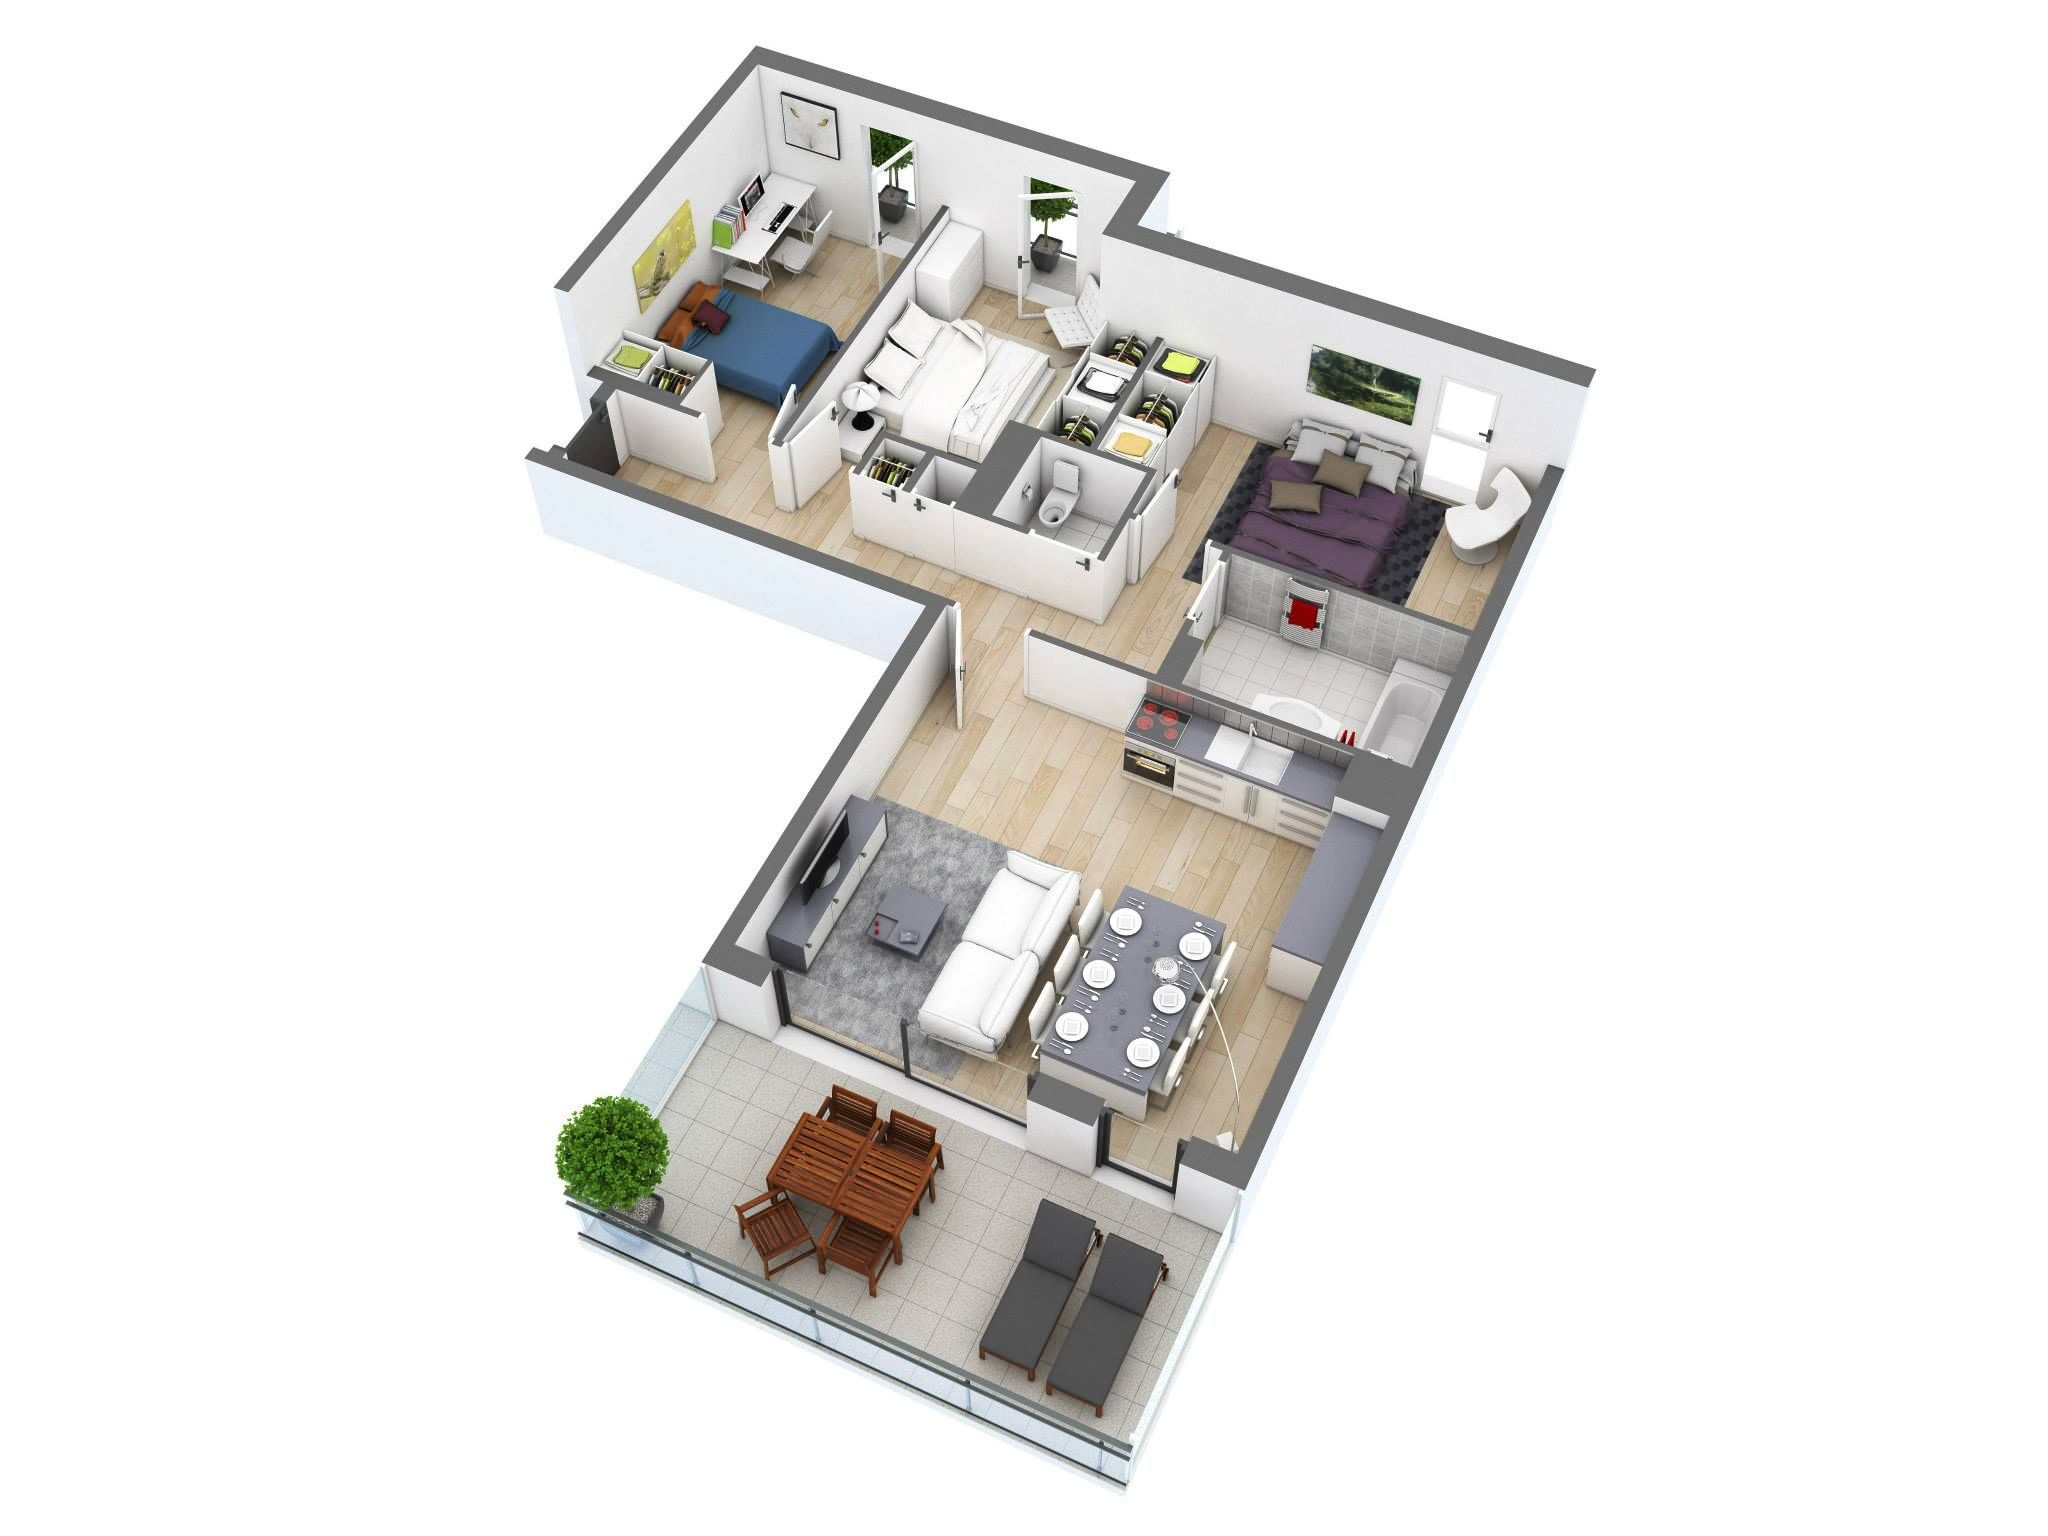 3 bedroom floor plans - 3d Floor Planning